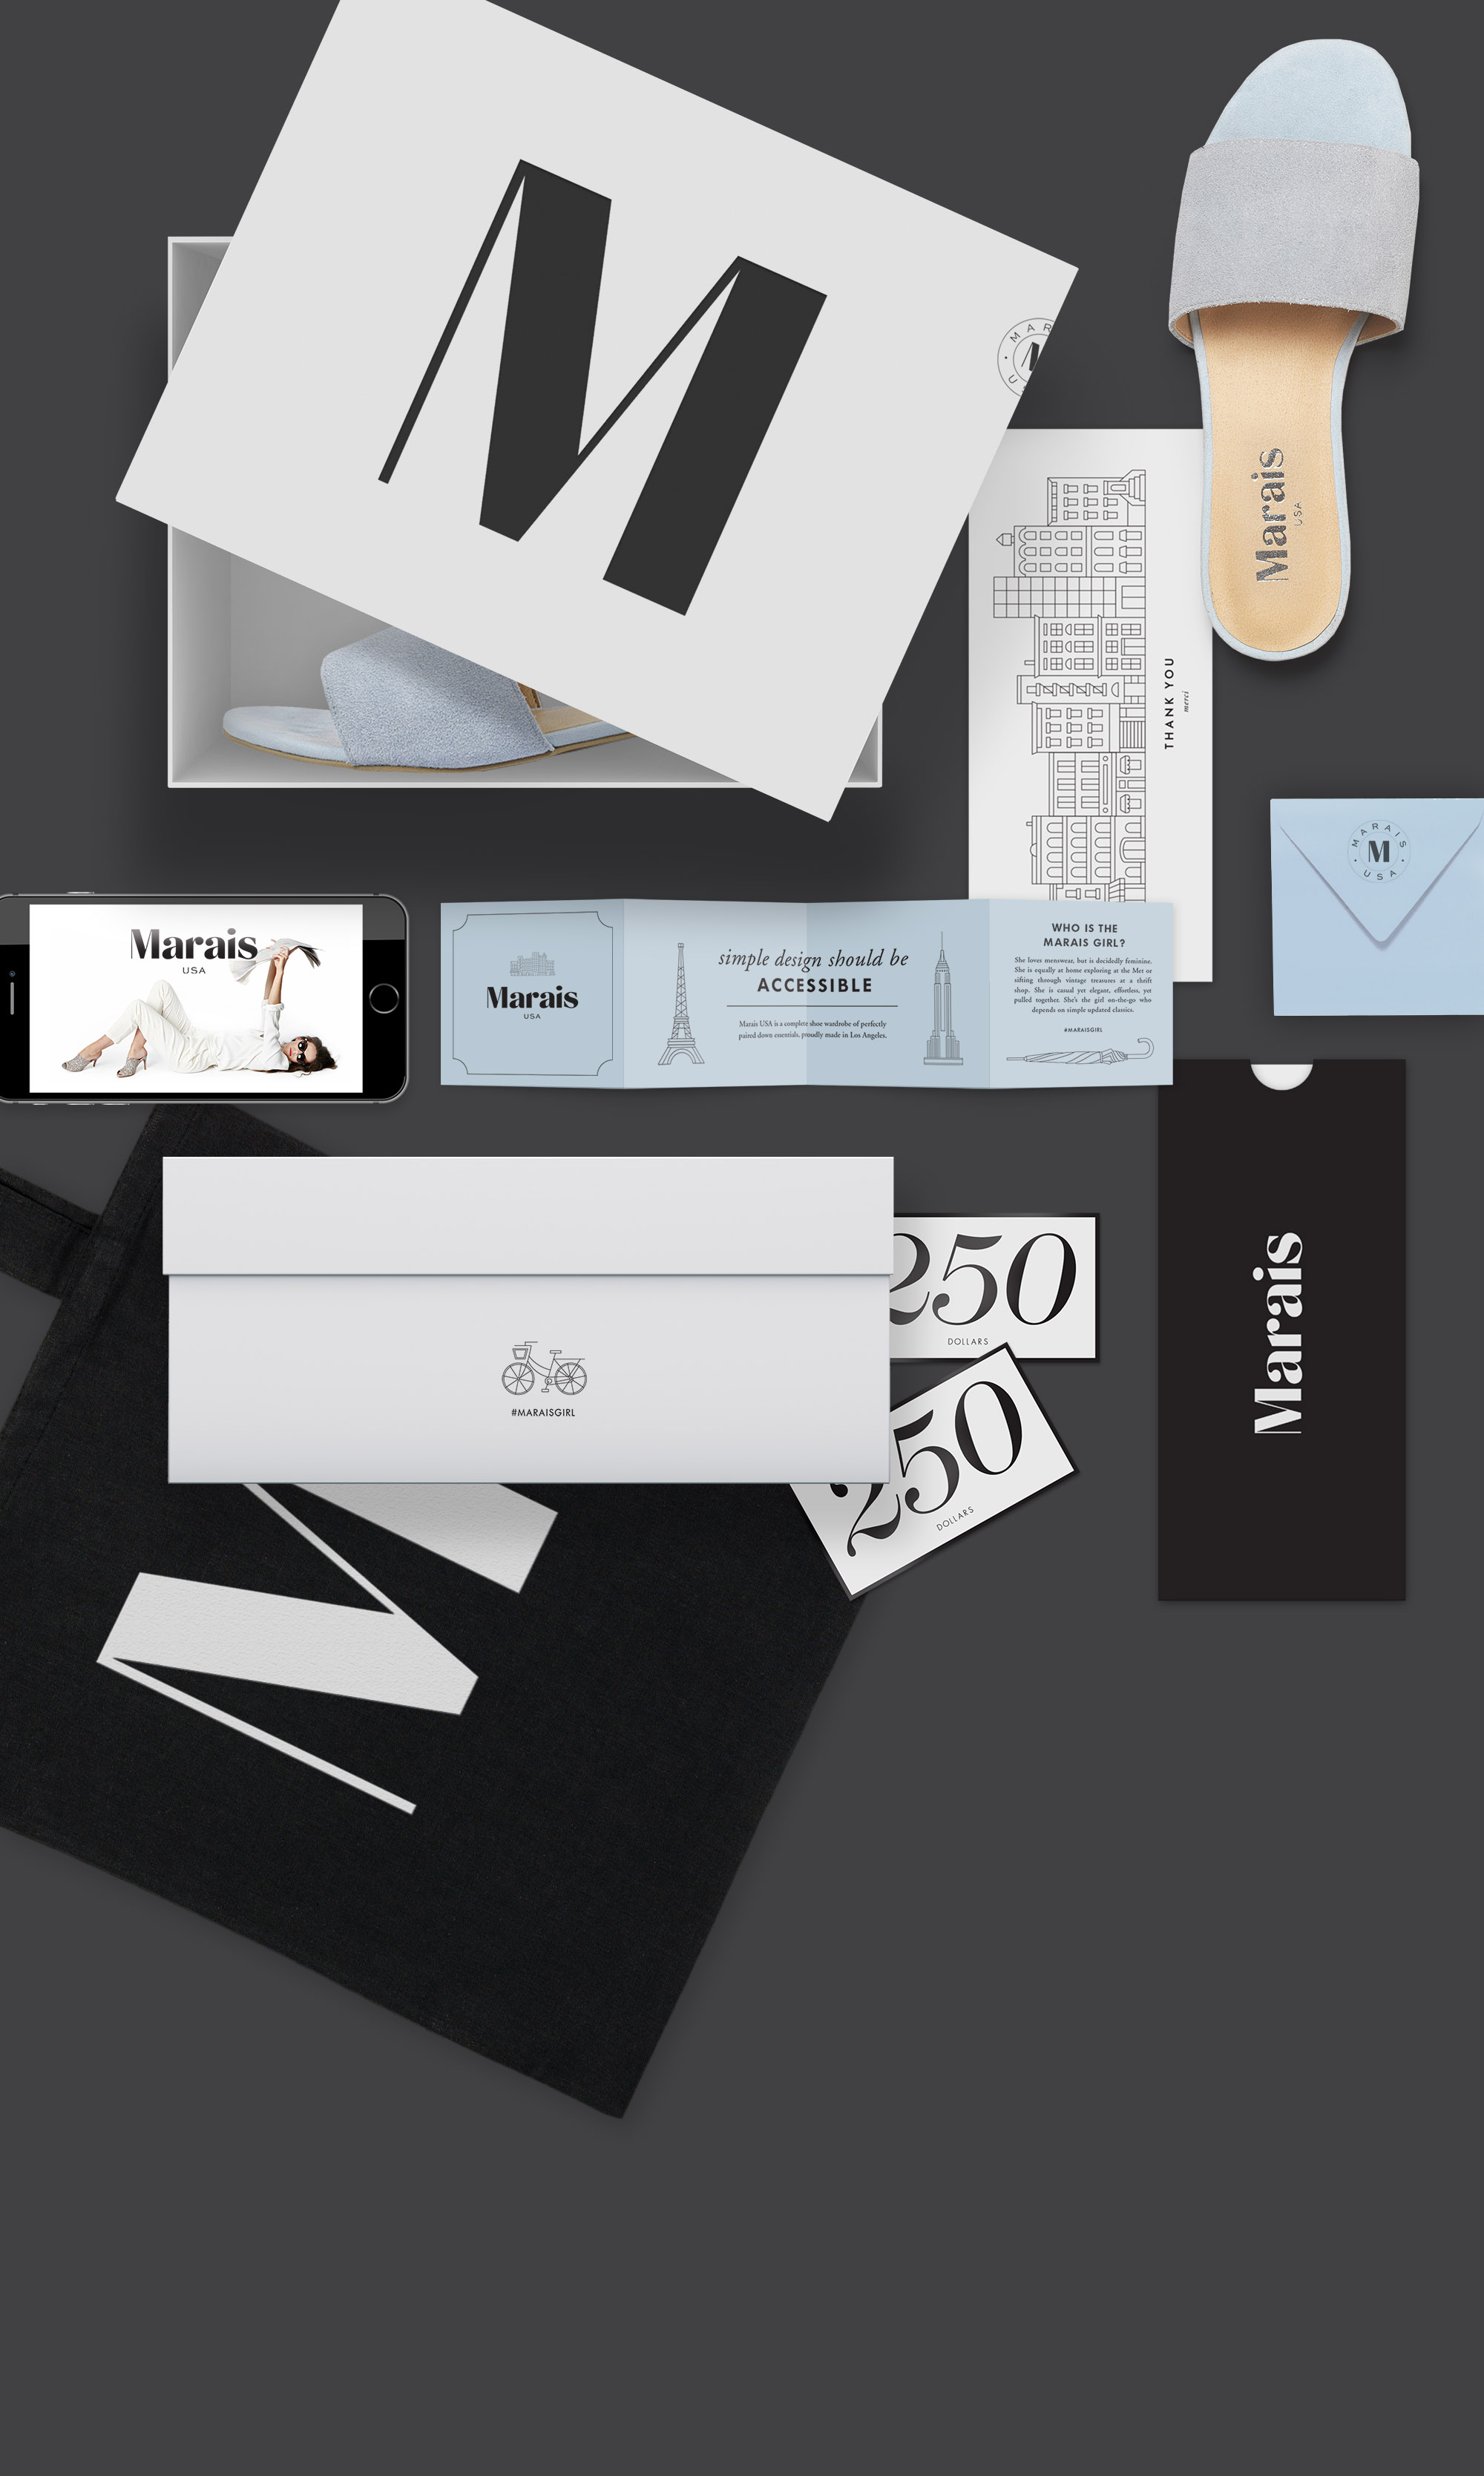 Marais logo and collateral designed by Scissor.